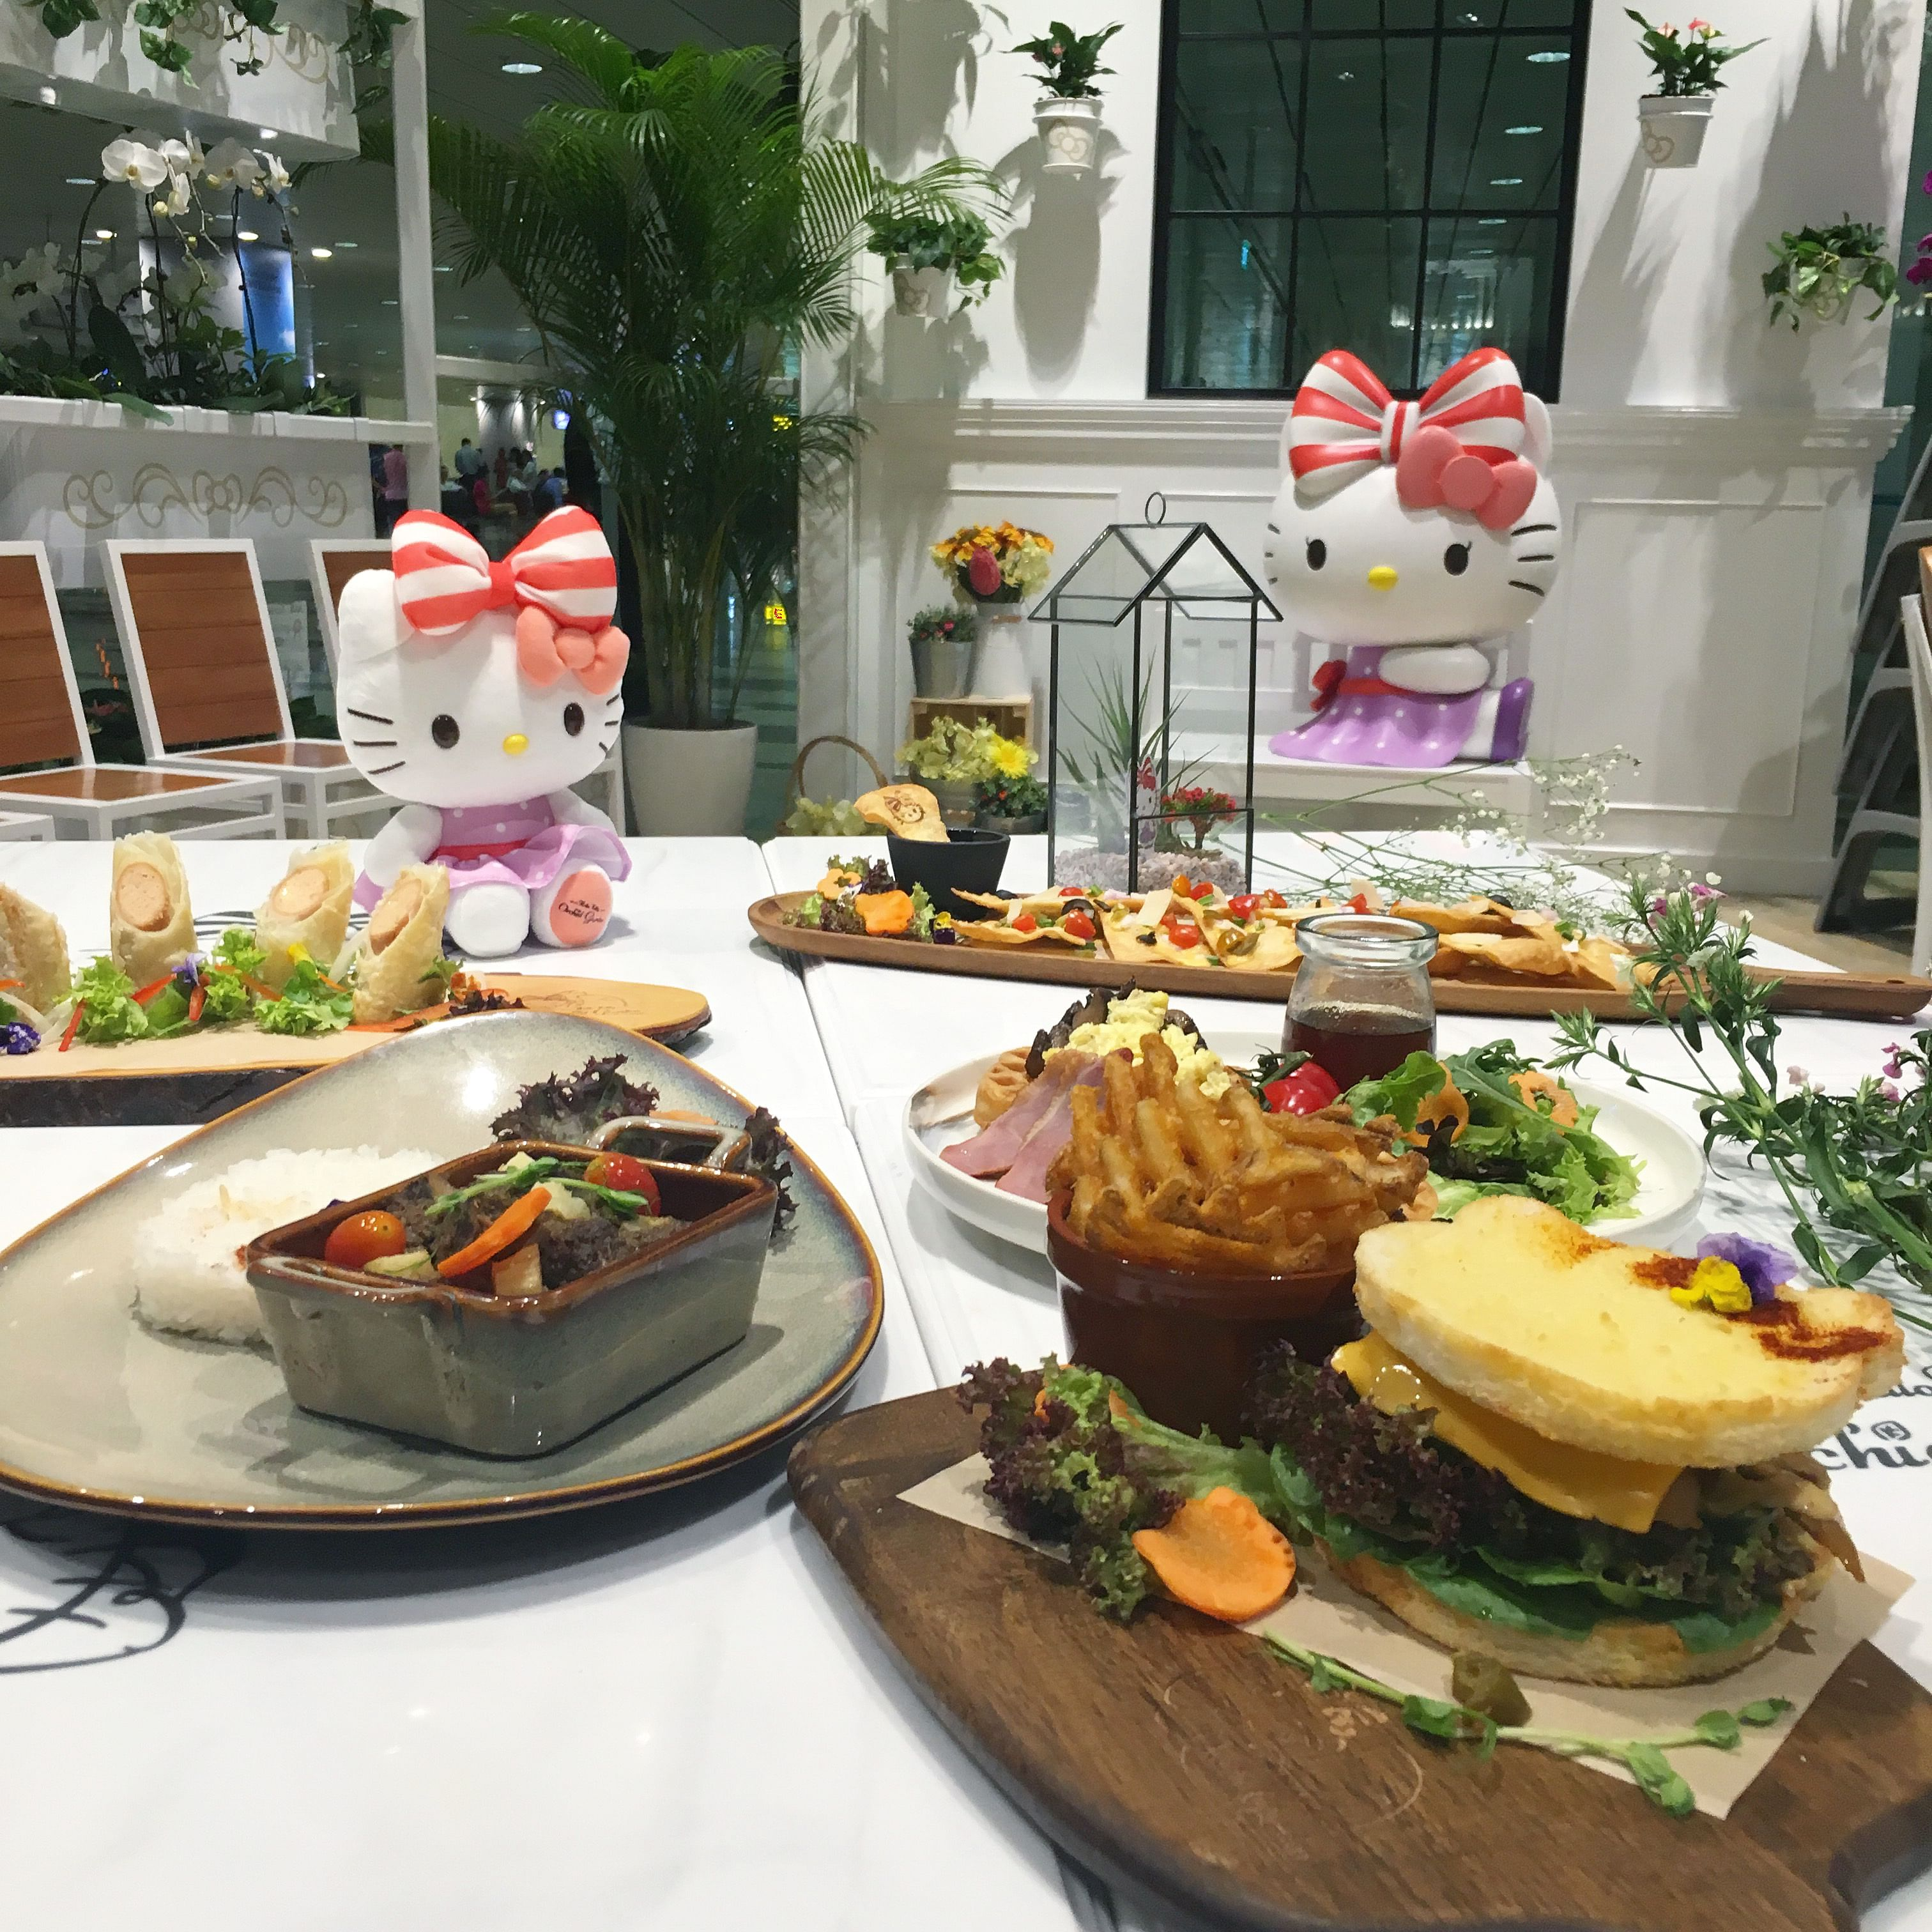 Home Decor Singapore: A 24-hour Hello Kitty Cafe At